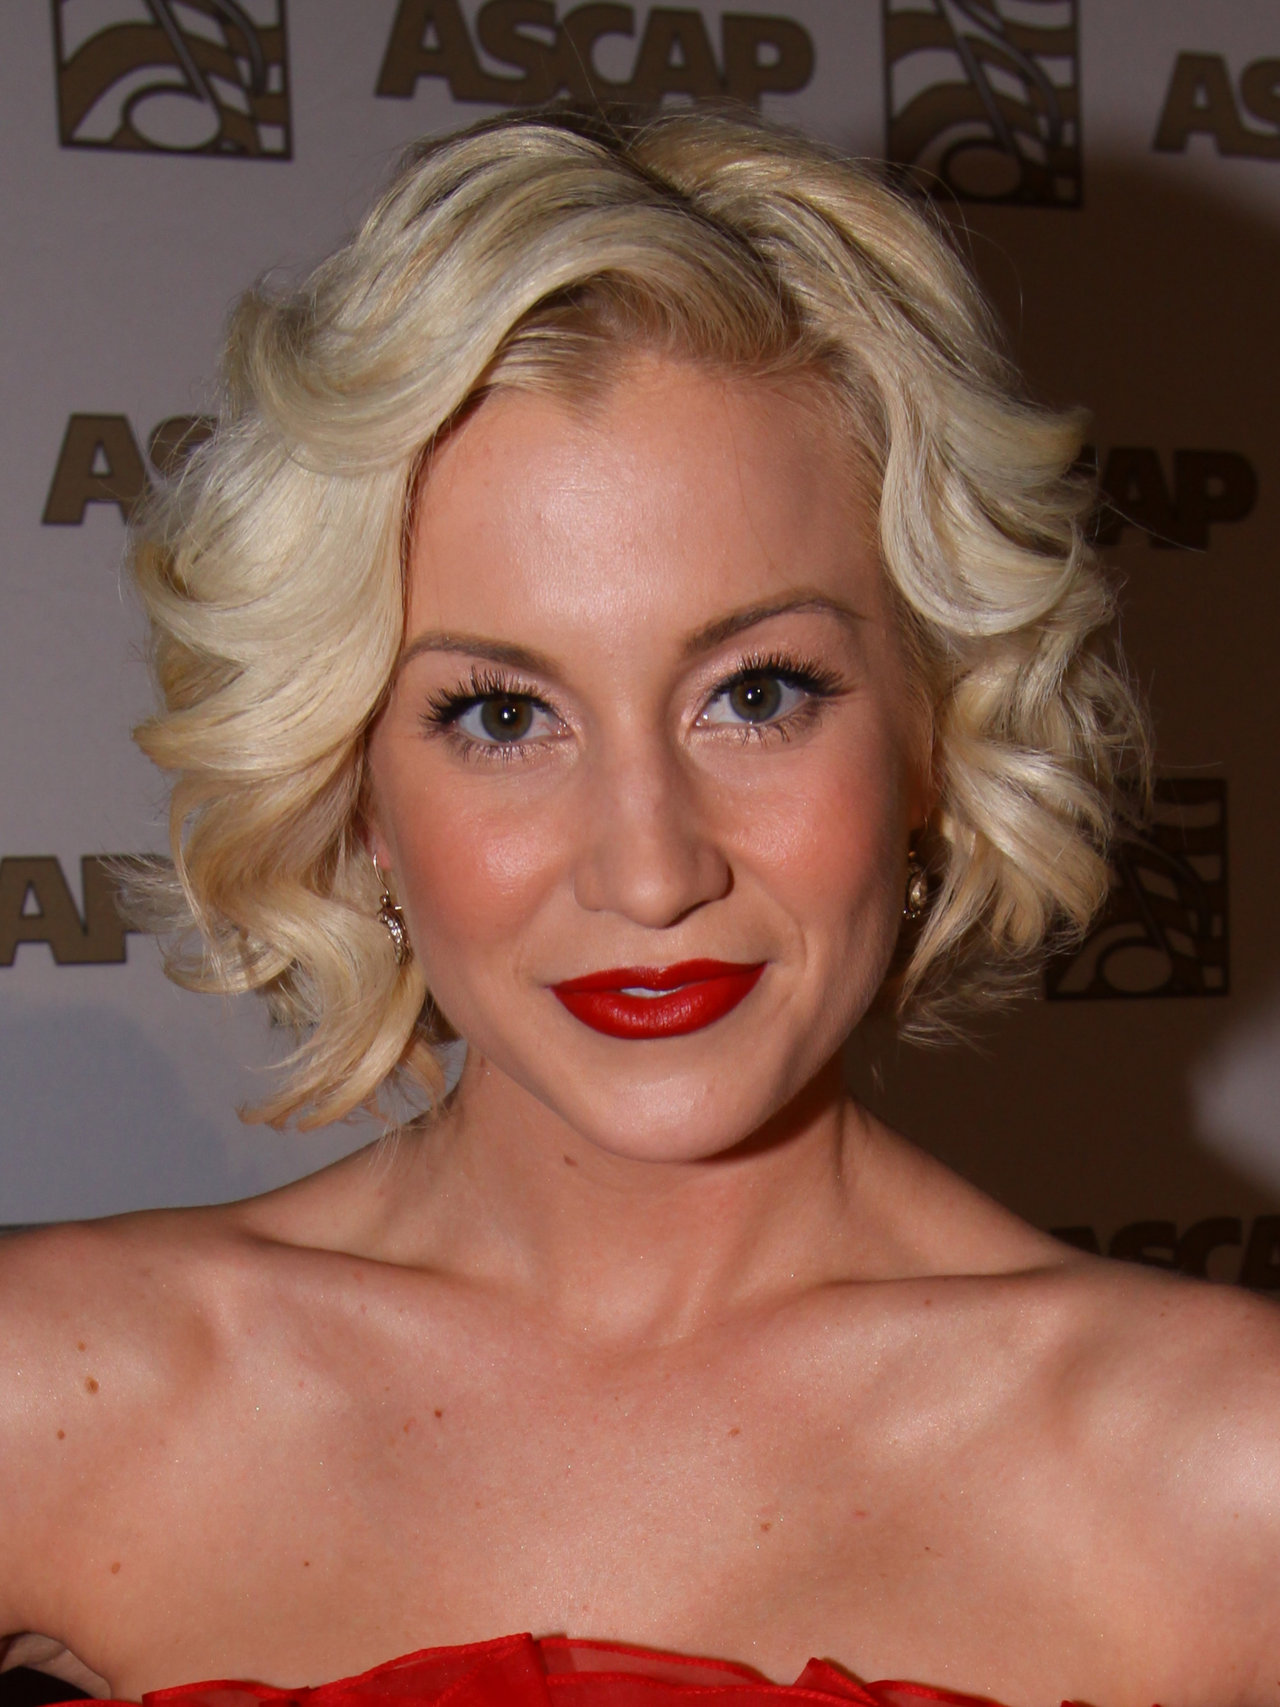 Sexiest pictures of kellie pickler, little girls asshole galleries